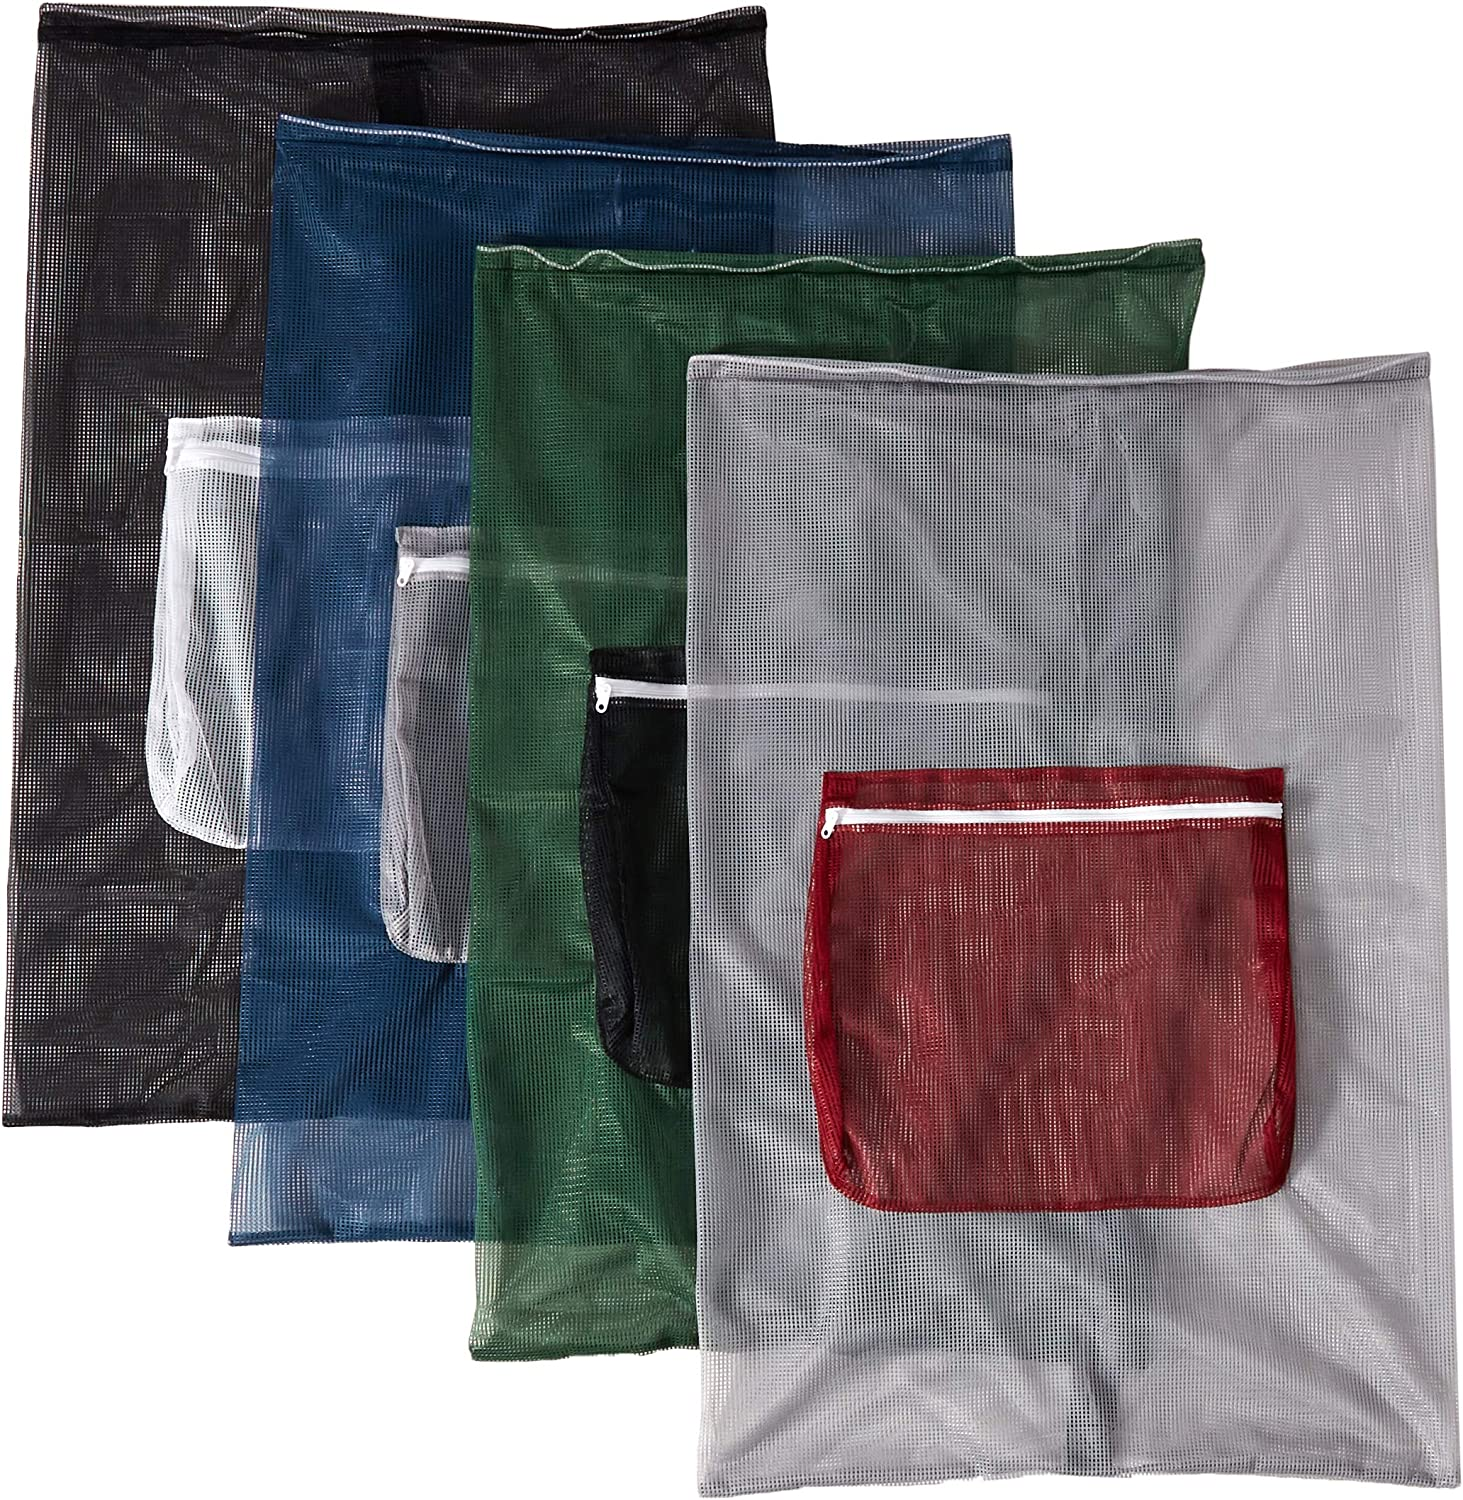 "HOMZ Mesh Carry All Laundry Bag 24"" X 36"" (Assorted Colors) 12 Pack"